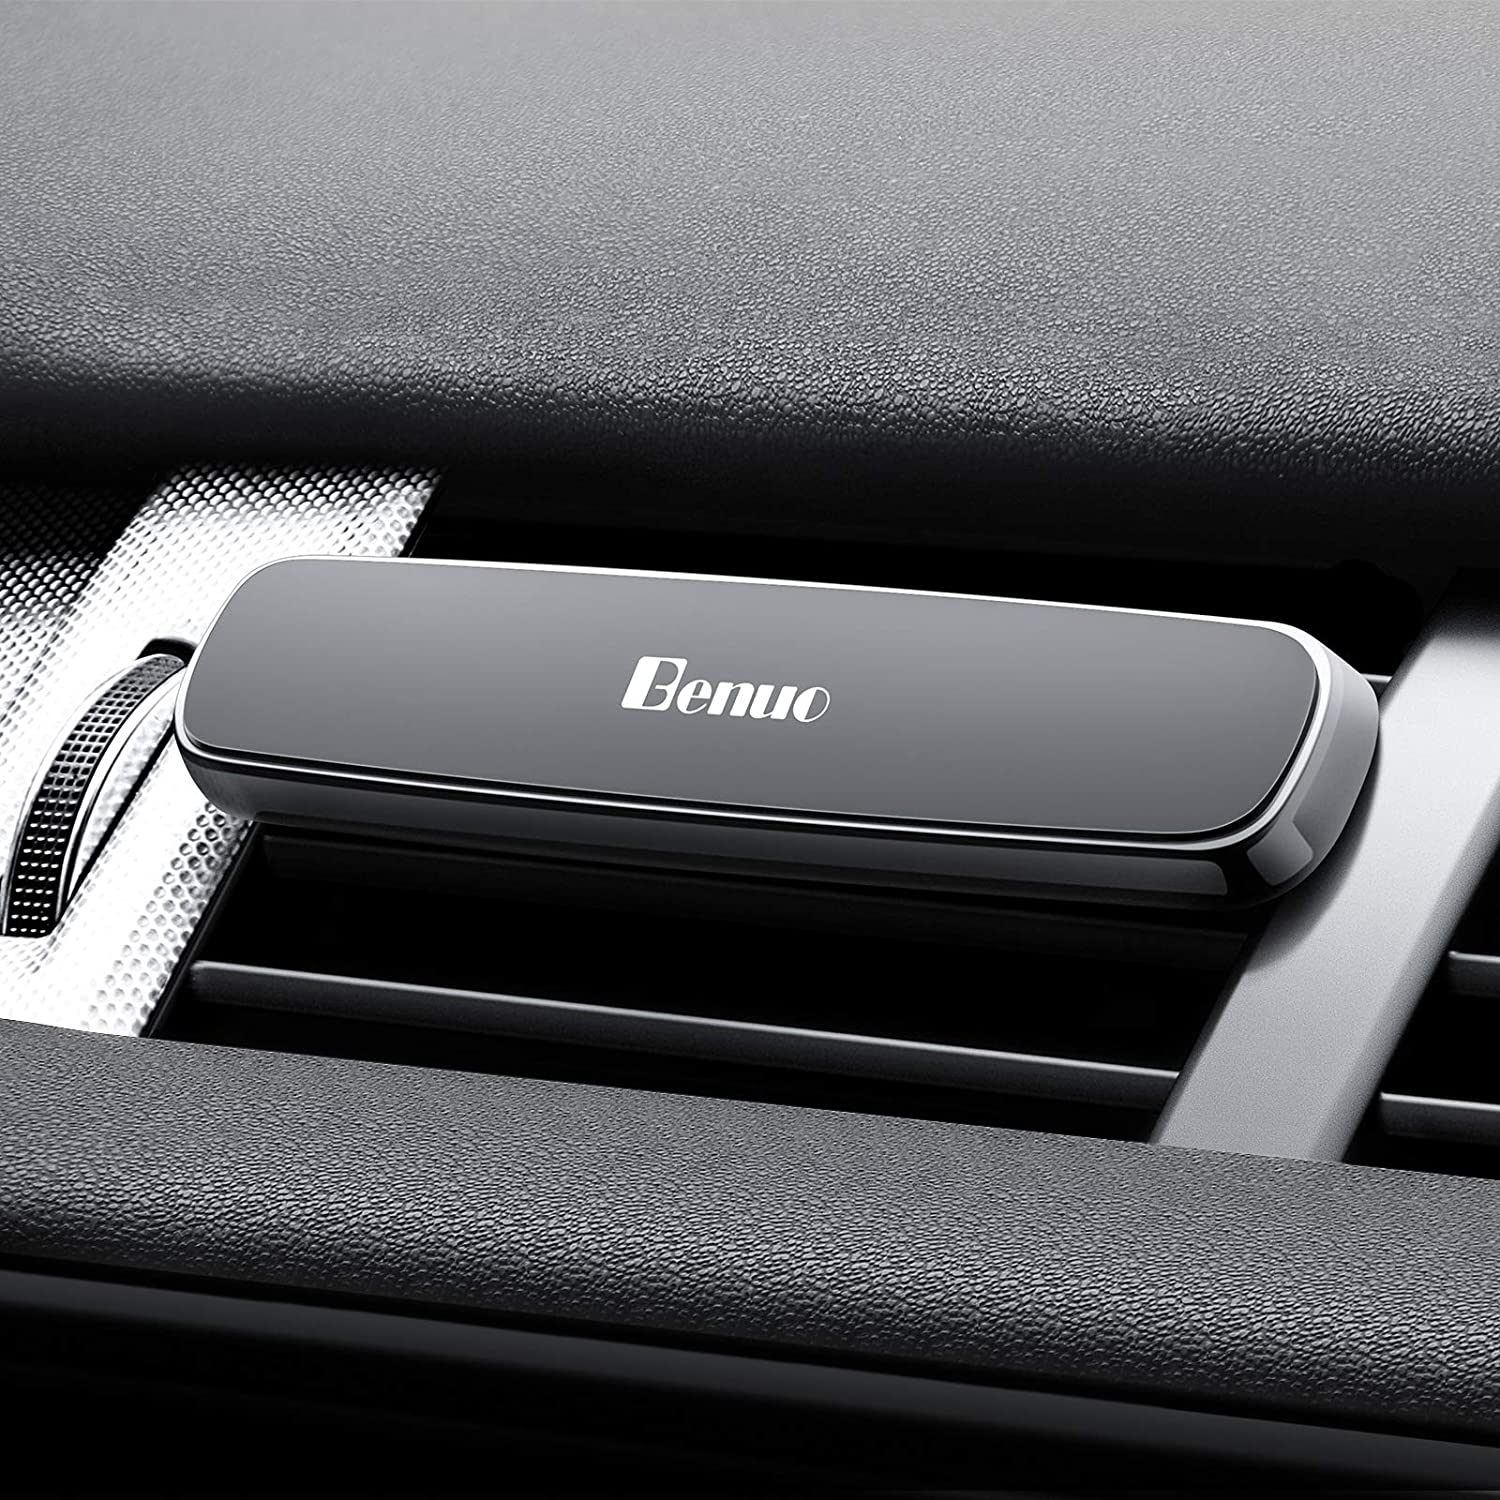 Benuo Magnetic Car Phone Mount Holder for Air Vents Strong Absorption Phone Mount for iPhone X / 8/8 Plus / 7/7 Plus / 6S Samsung Galaxy S5 / S6 / S7 / S8 Mini PC 18791312